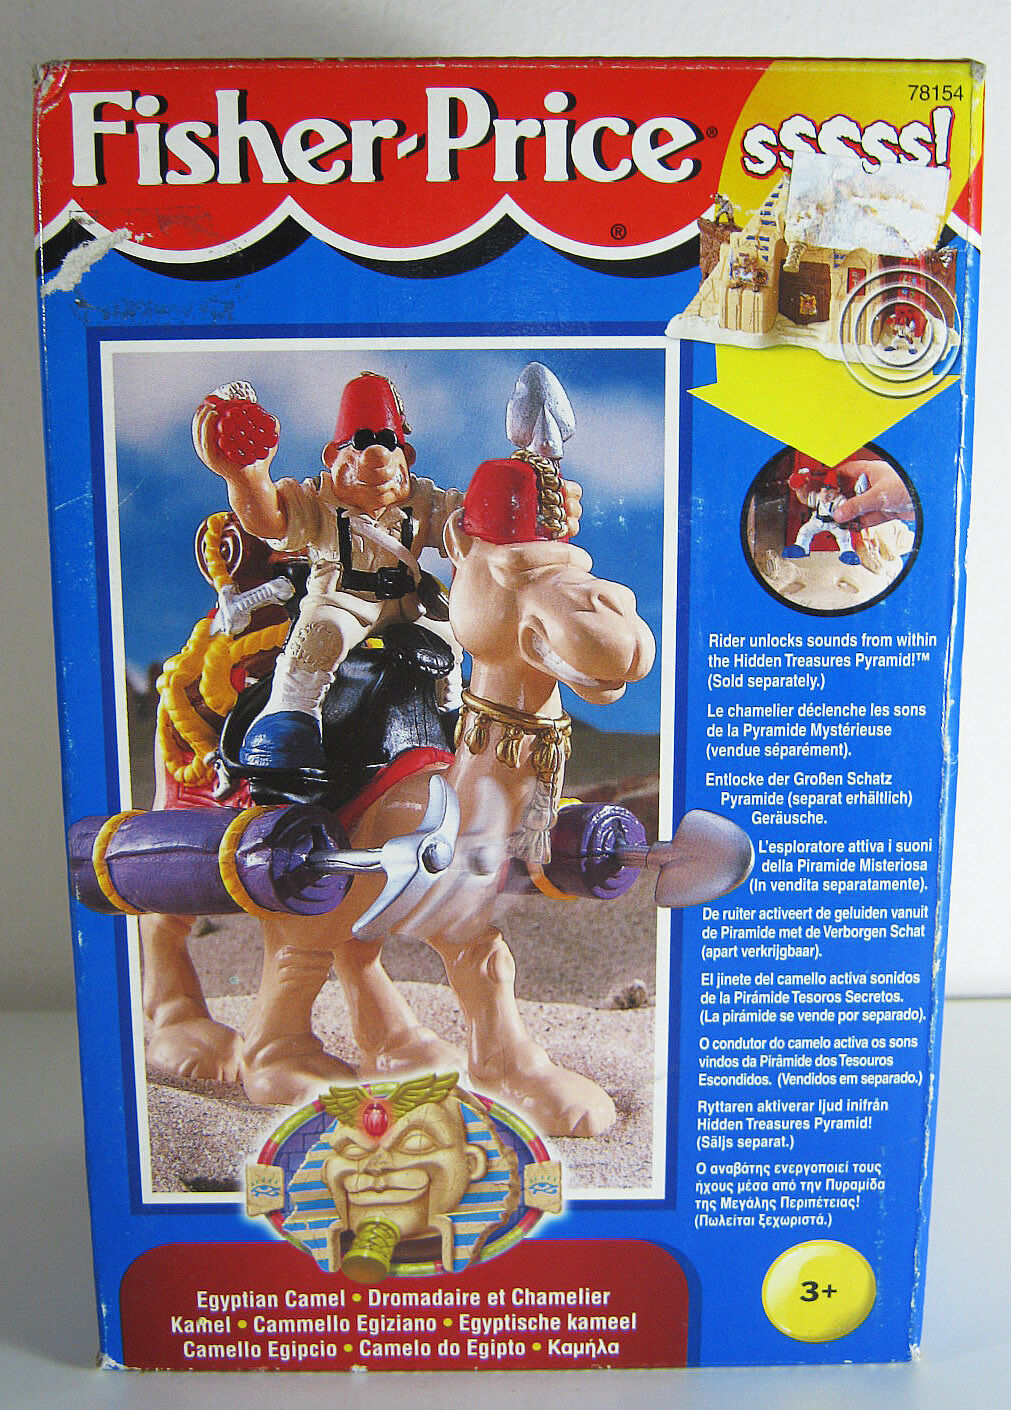 2001 FISHER PRICE FISHER-PRICE EGYPTIAN CAMEL BRAND NEW MIB SEALED CONTENTS